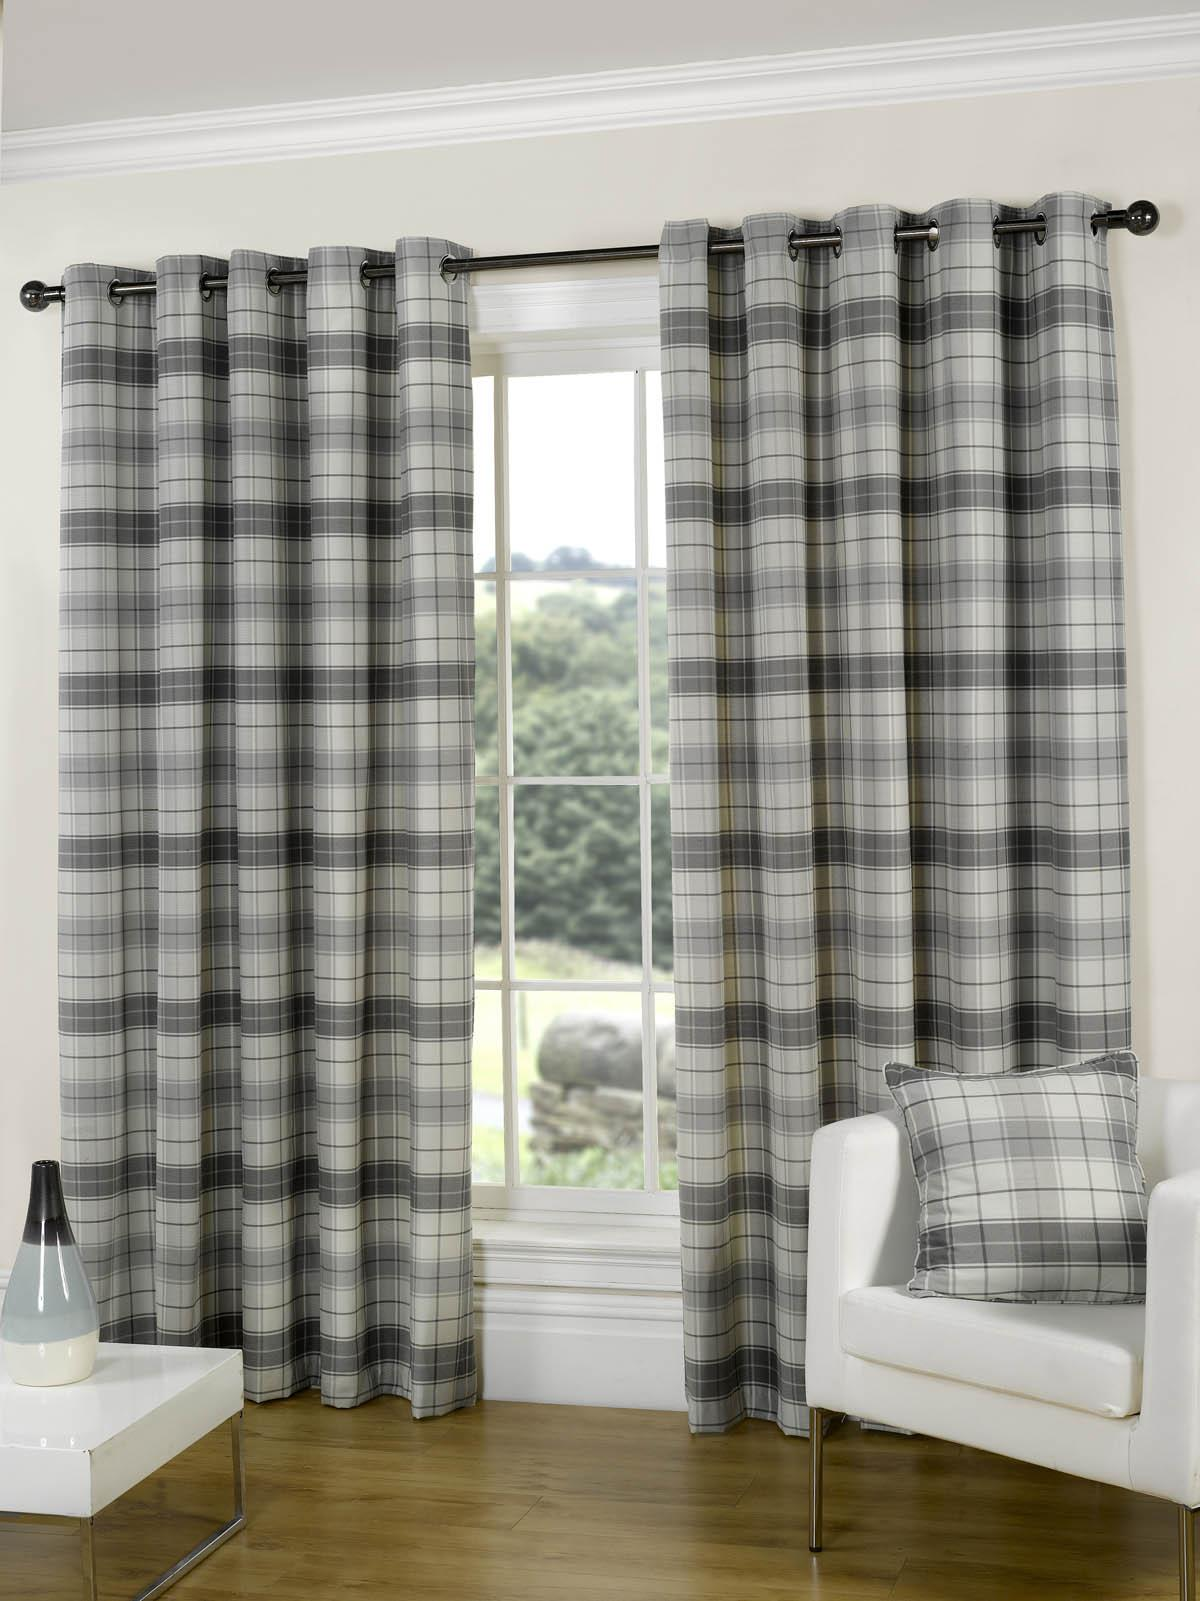 Cheap grey curtains - Cheap Grey Curtains Isla Ready Made Eyelet Curtains